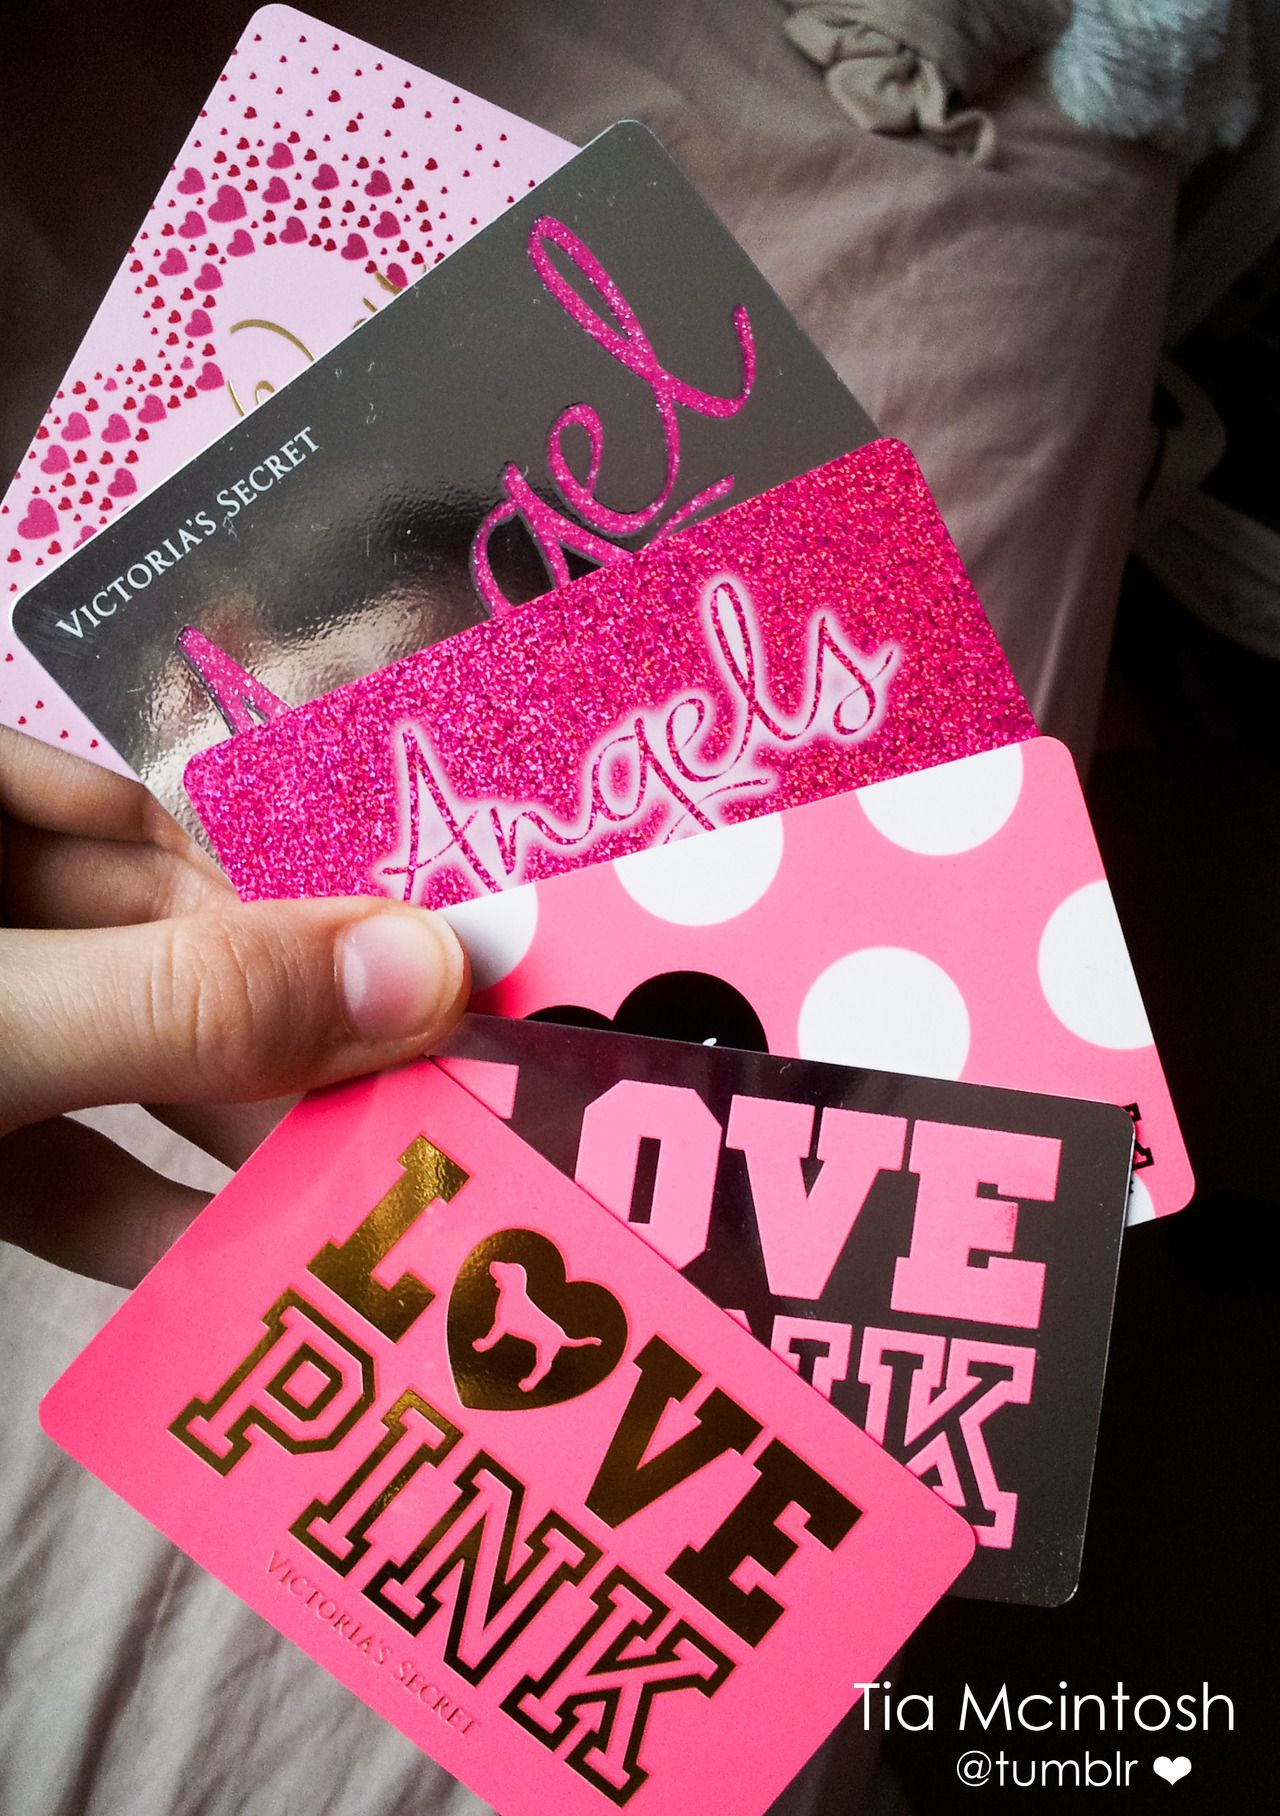 Seriously if anyone wants to give me stuff from victorias secret just pink gift card not like victoria secret gift card negle